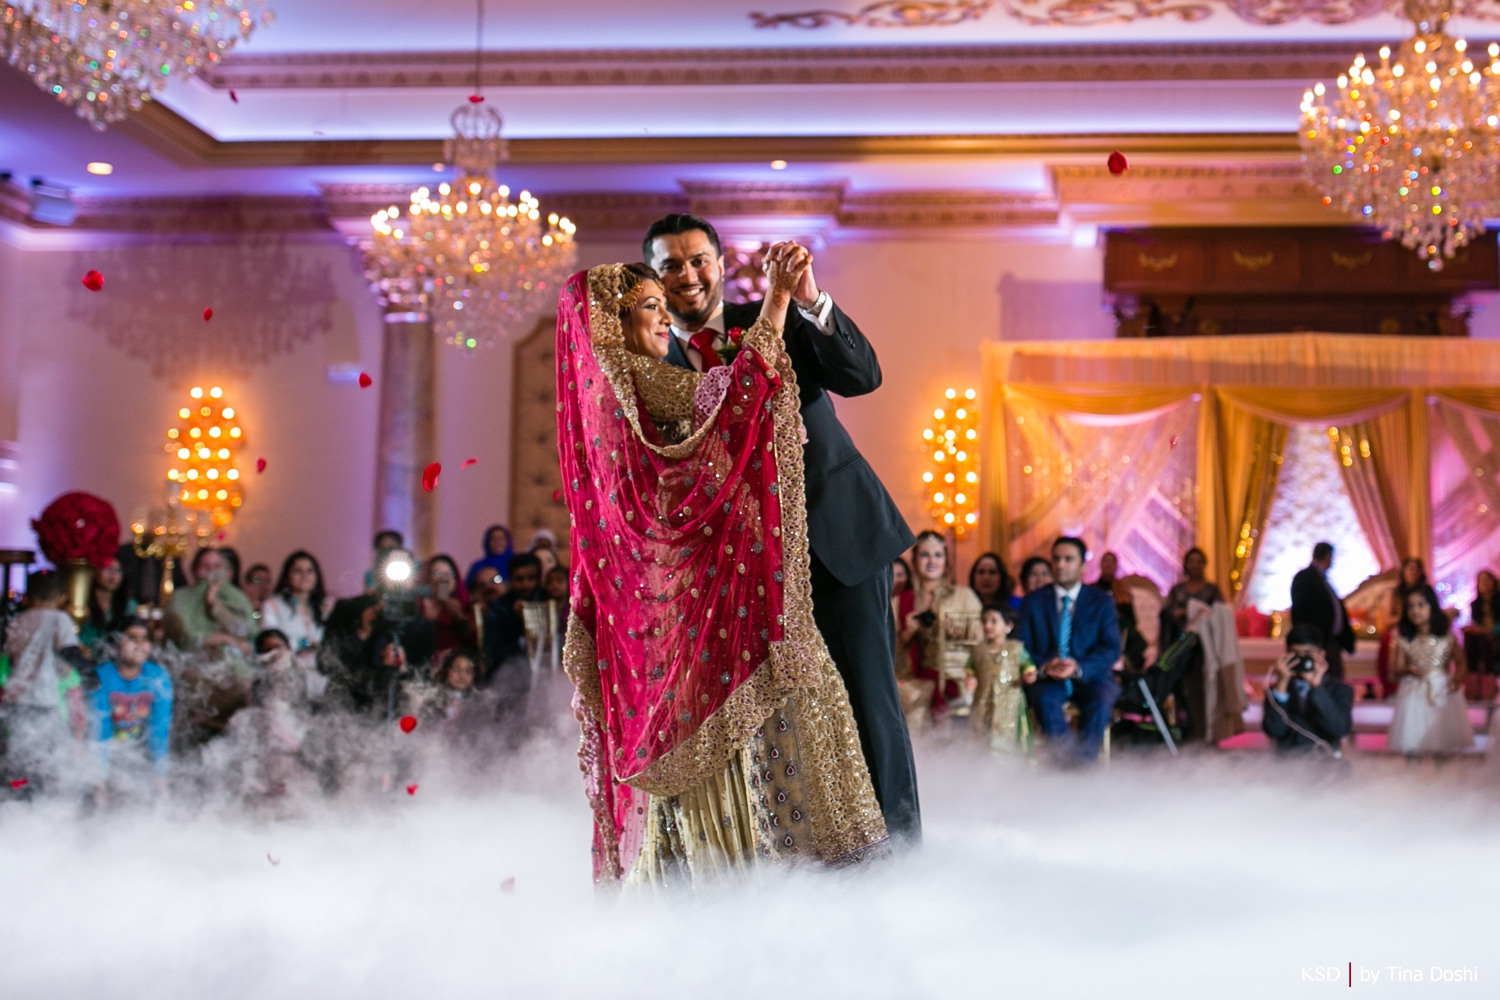 nj_south_asian_wedding_0135